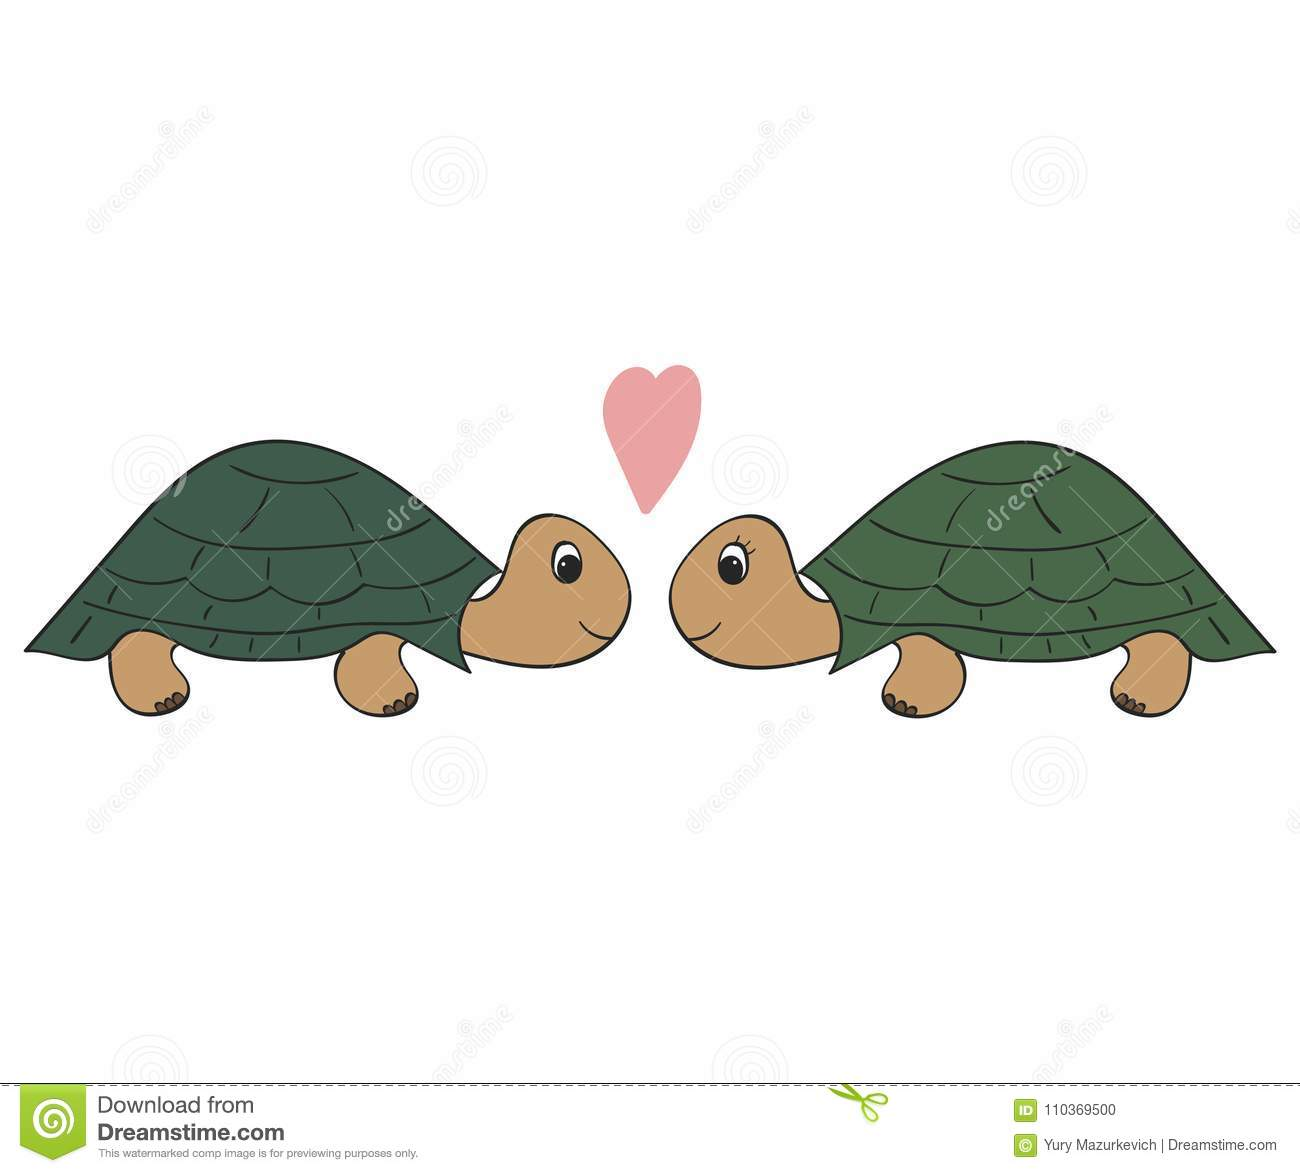 Hand drawn illustration, a pair of turtles